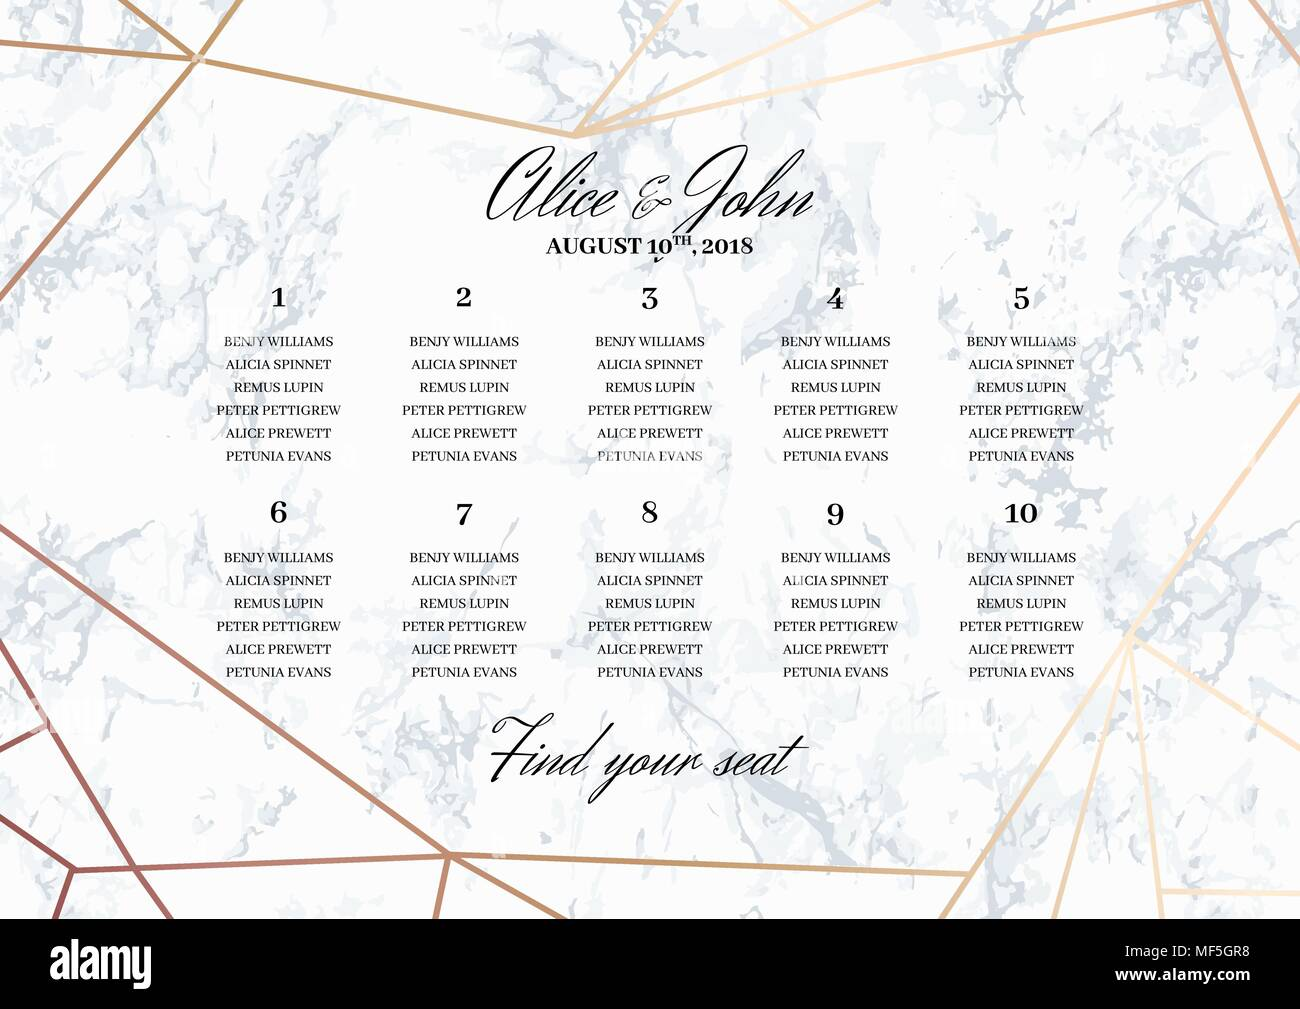 Wedding Seating Chart Poster Template. - Stock Vector